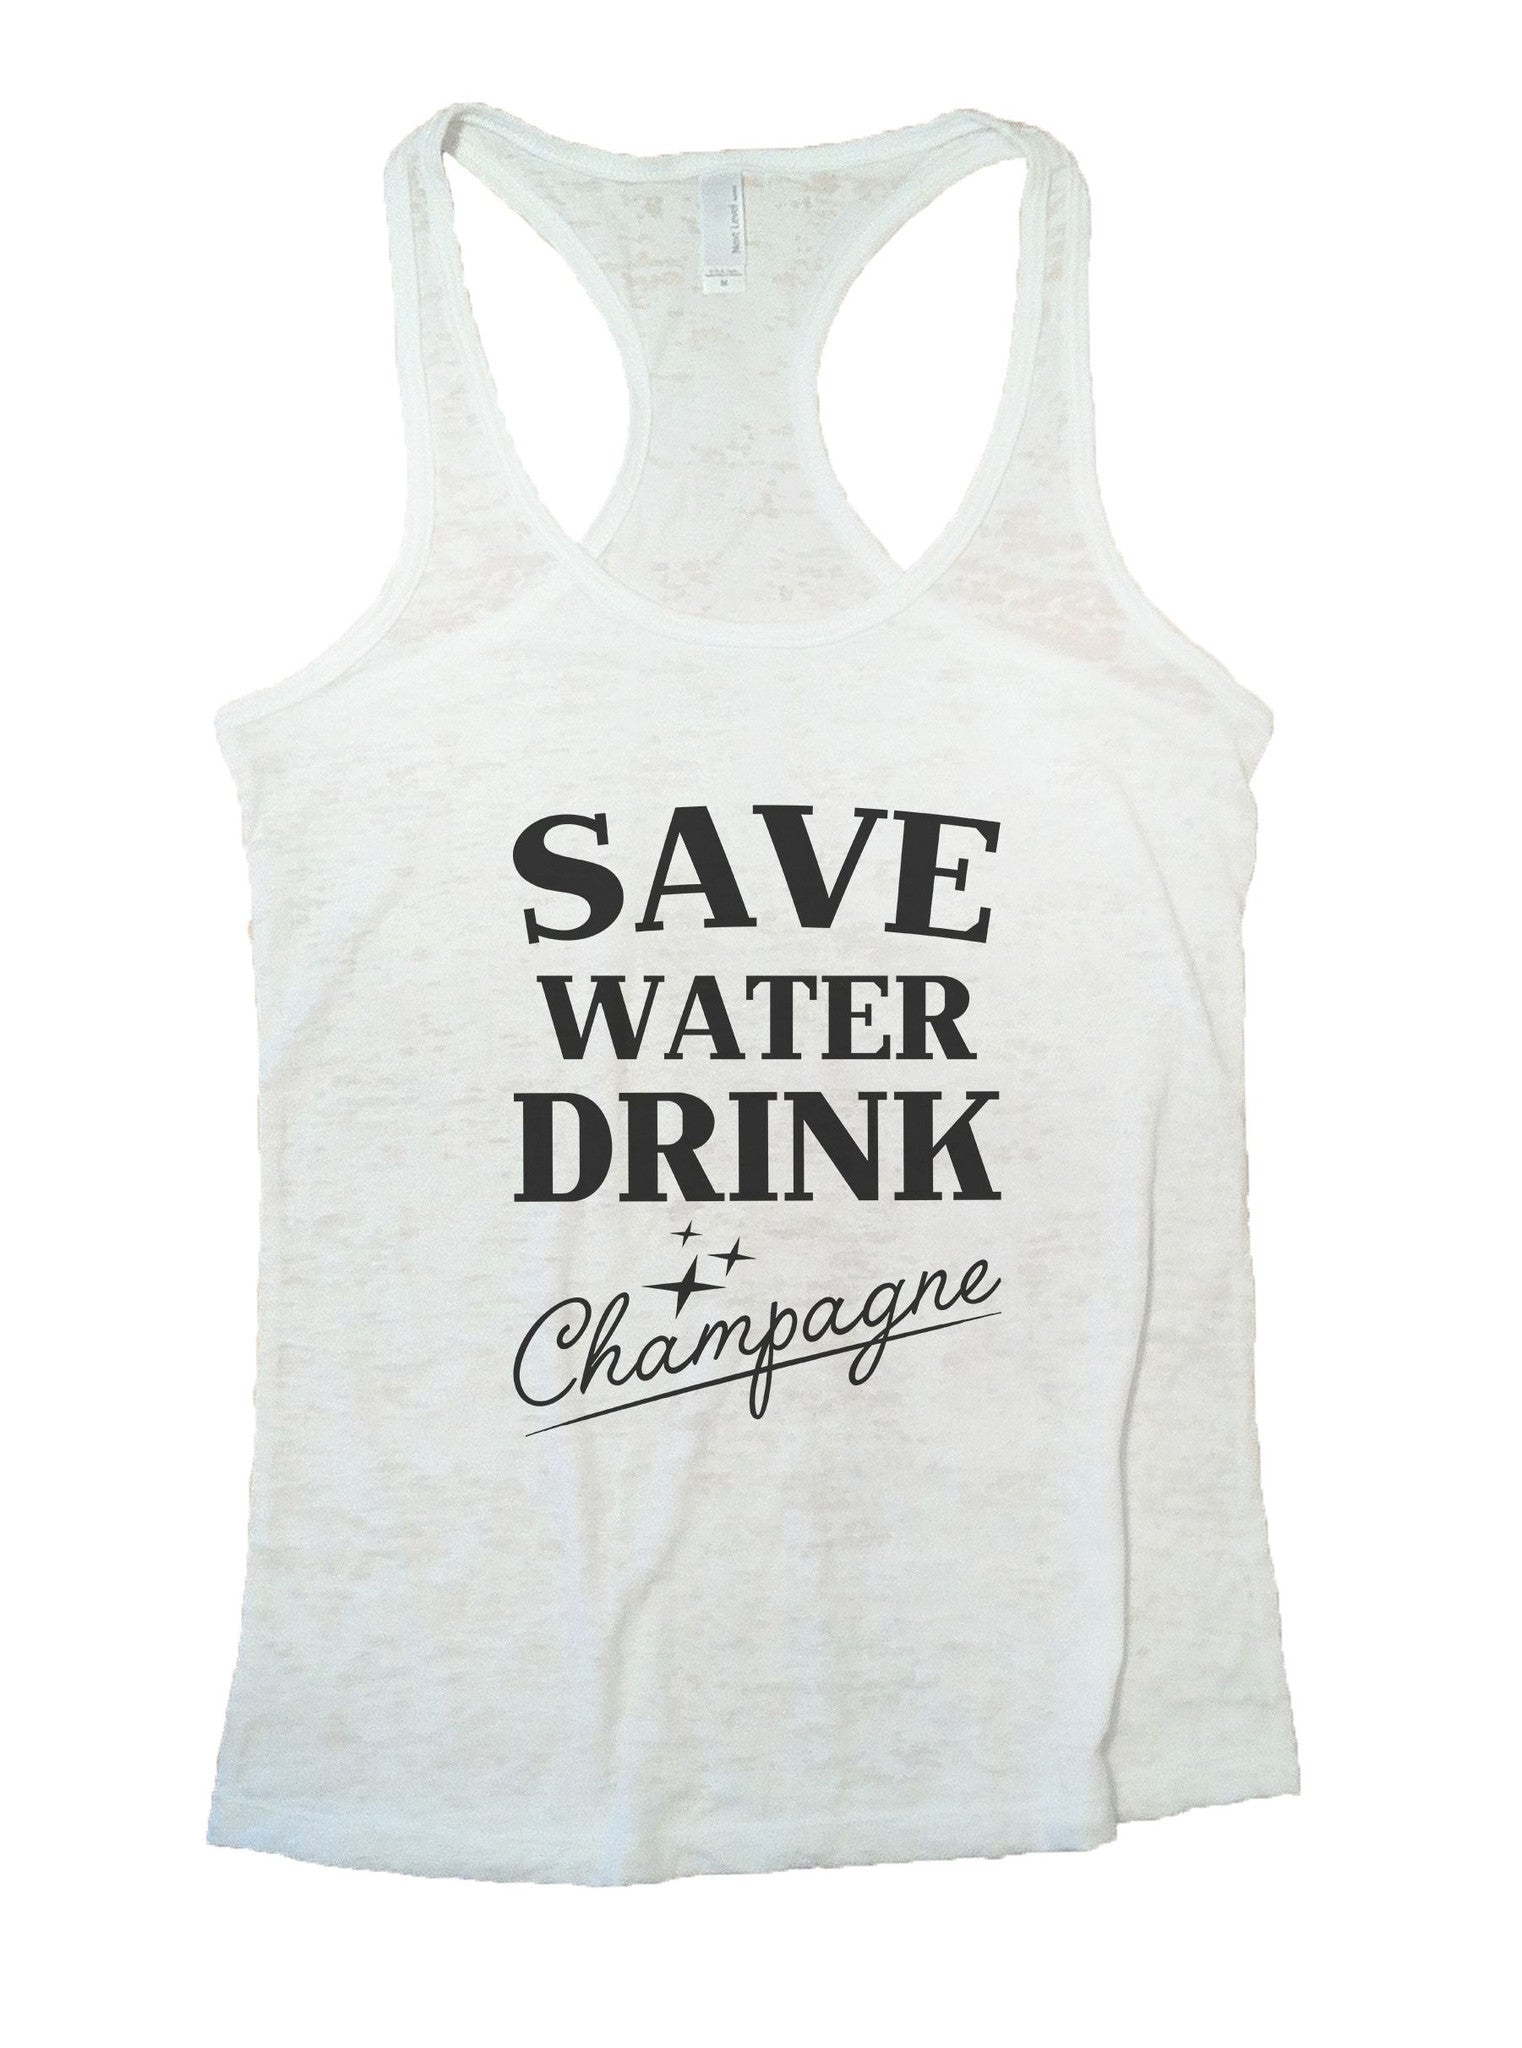 Save Water Dring Champagne Burnout Tank Top By BurnoutTankTops.com - 1009 - Funny Shirts Tank Tops Burnouts and Triblends  - 6